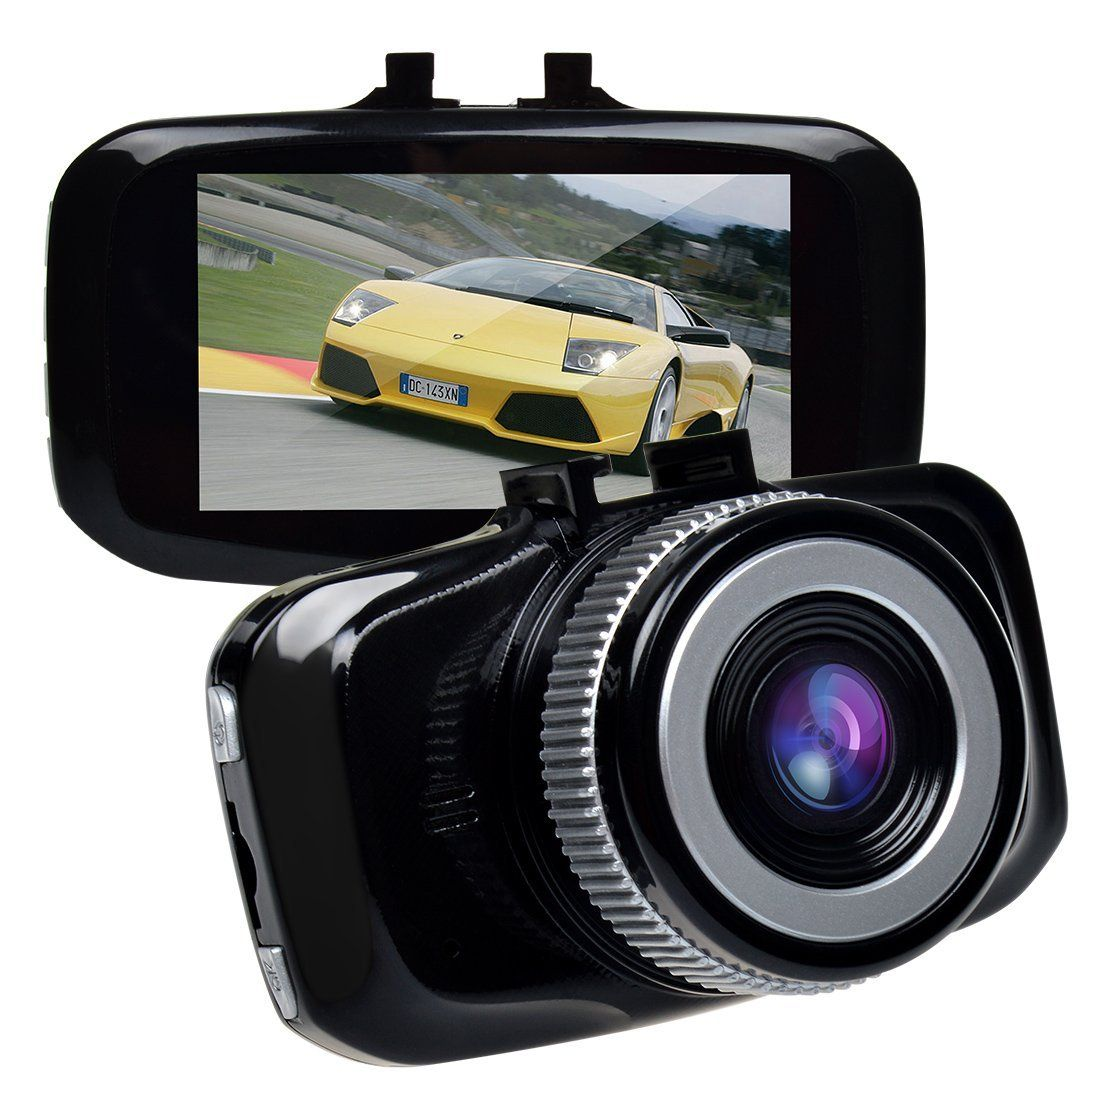 die toguard full hd 1080p 2 7 zoll lcd dashcam. Black Bedroom Furniture Sets. Home Design Ideas